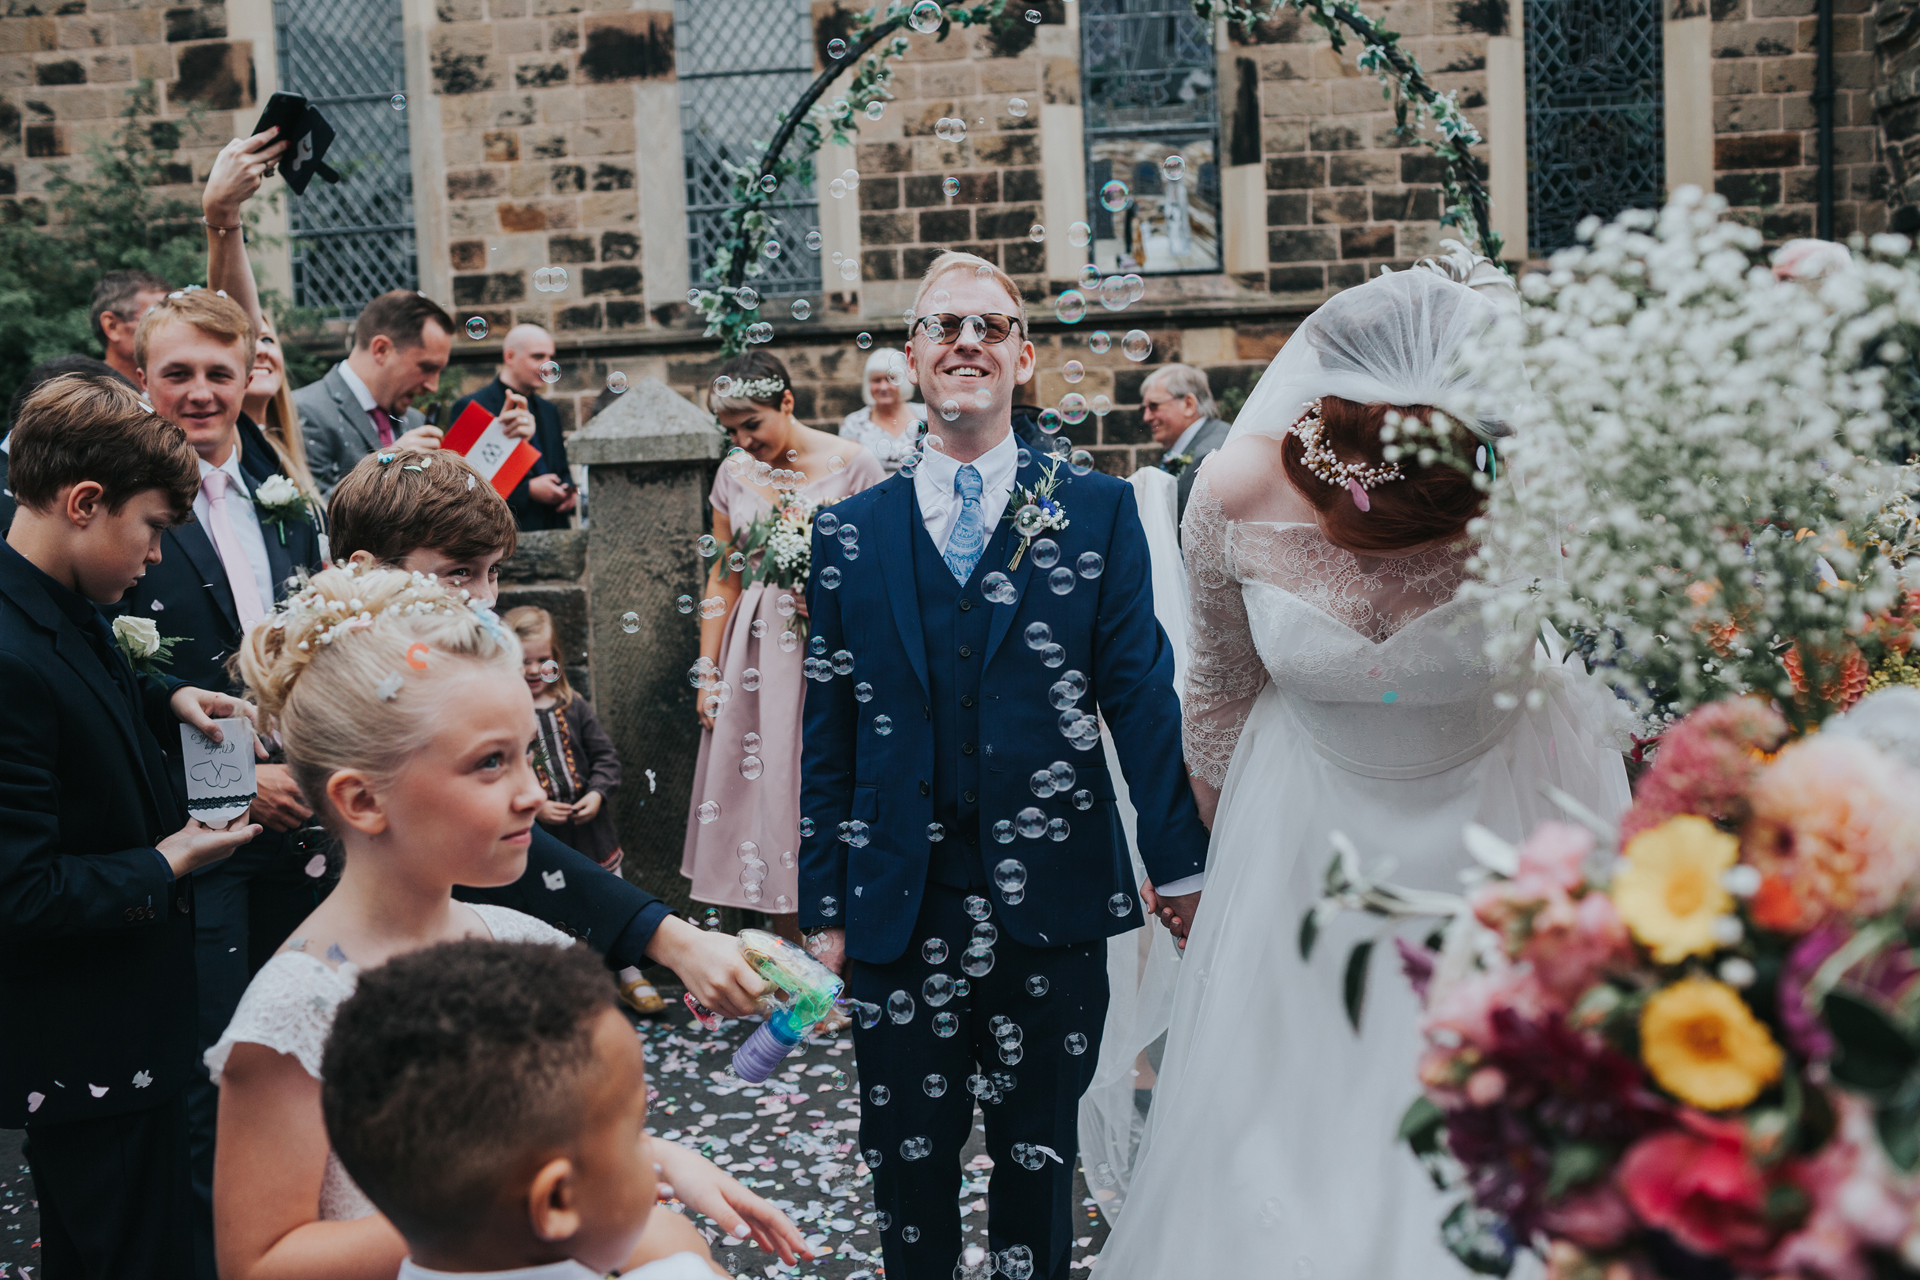 Bubbles, flowers and bride and groom as they exit St Thomas's Church, Liverpool.